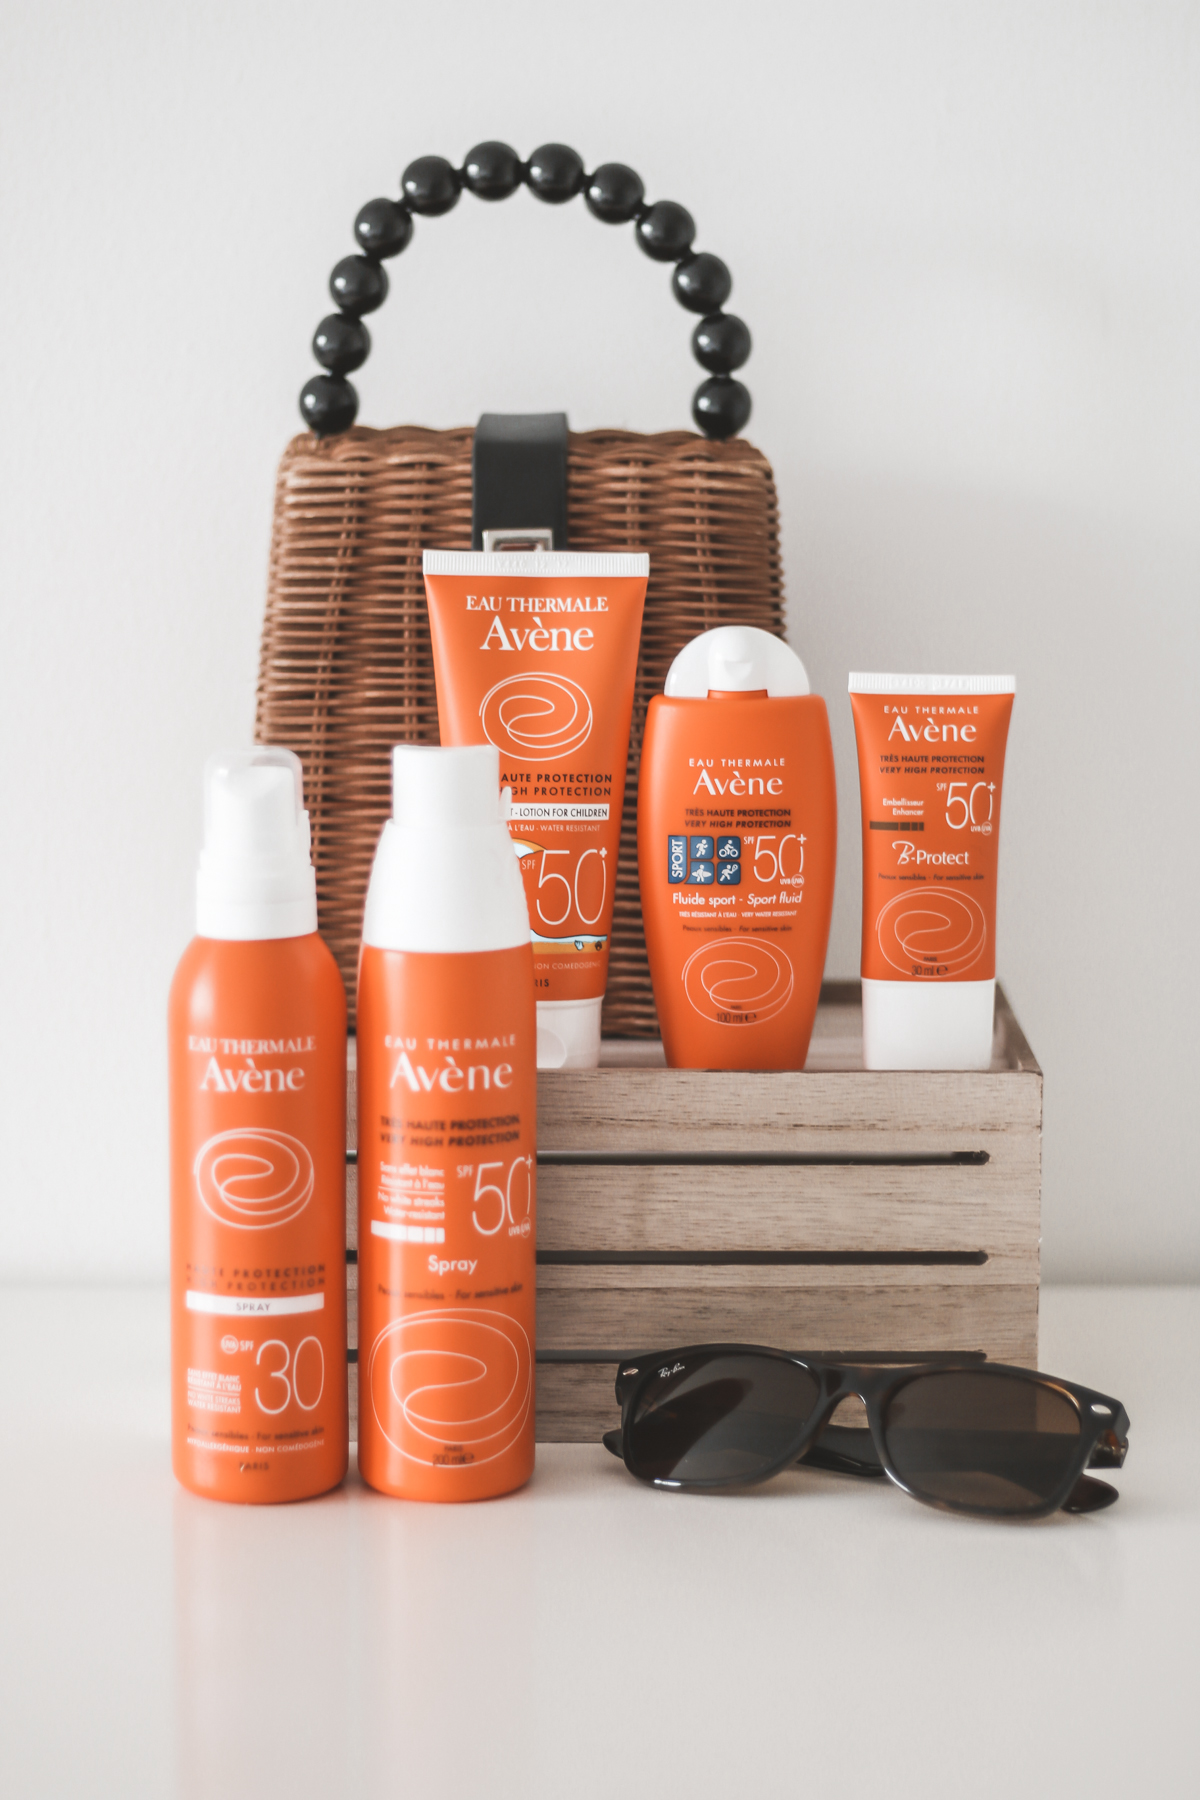 Avene Expert Sun Care Routine: Five New Sun Products Added To The Range